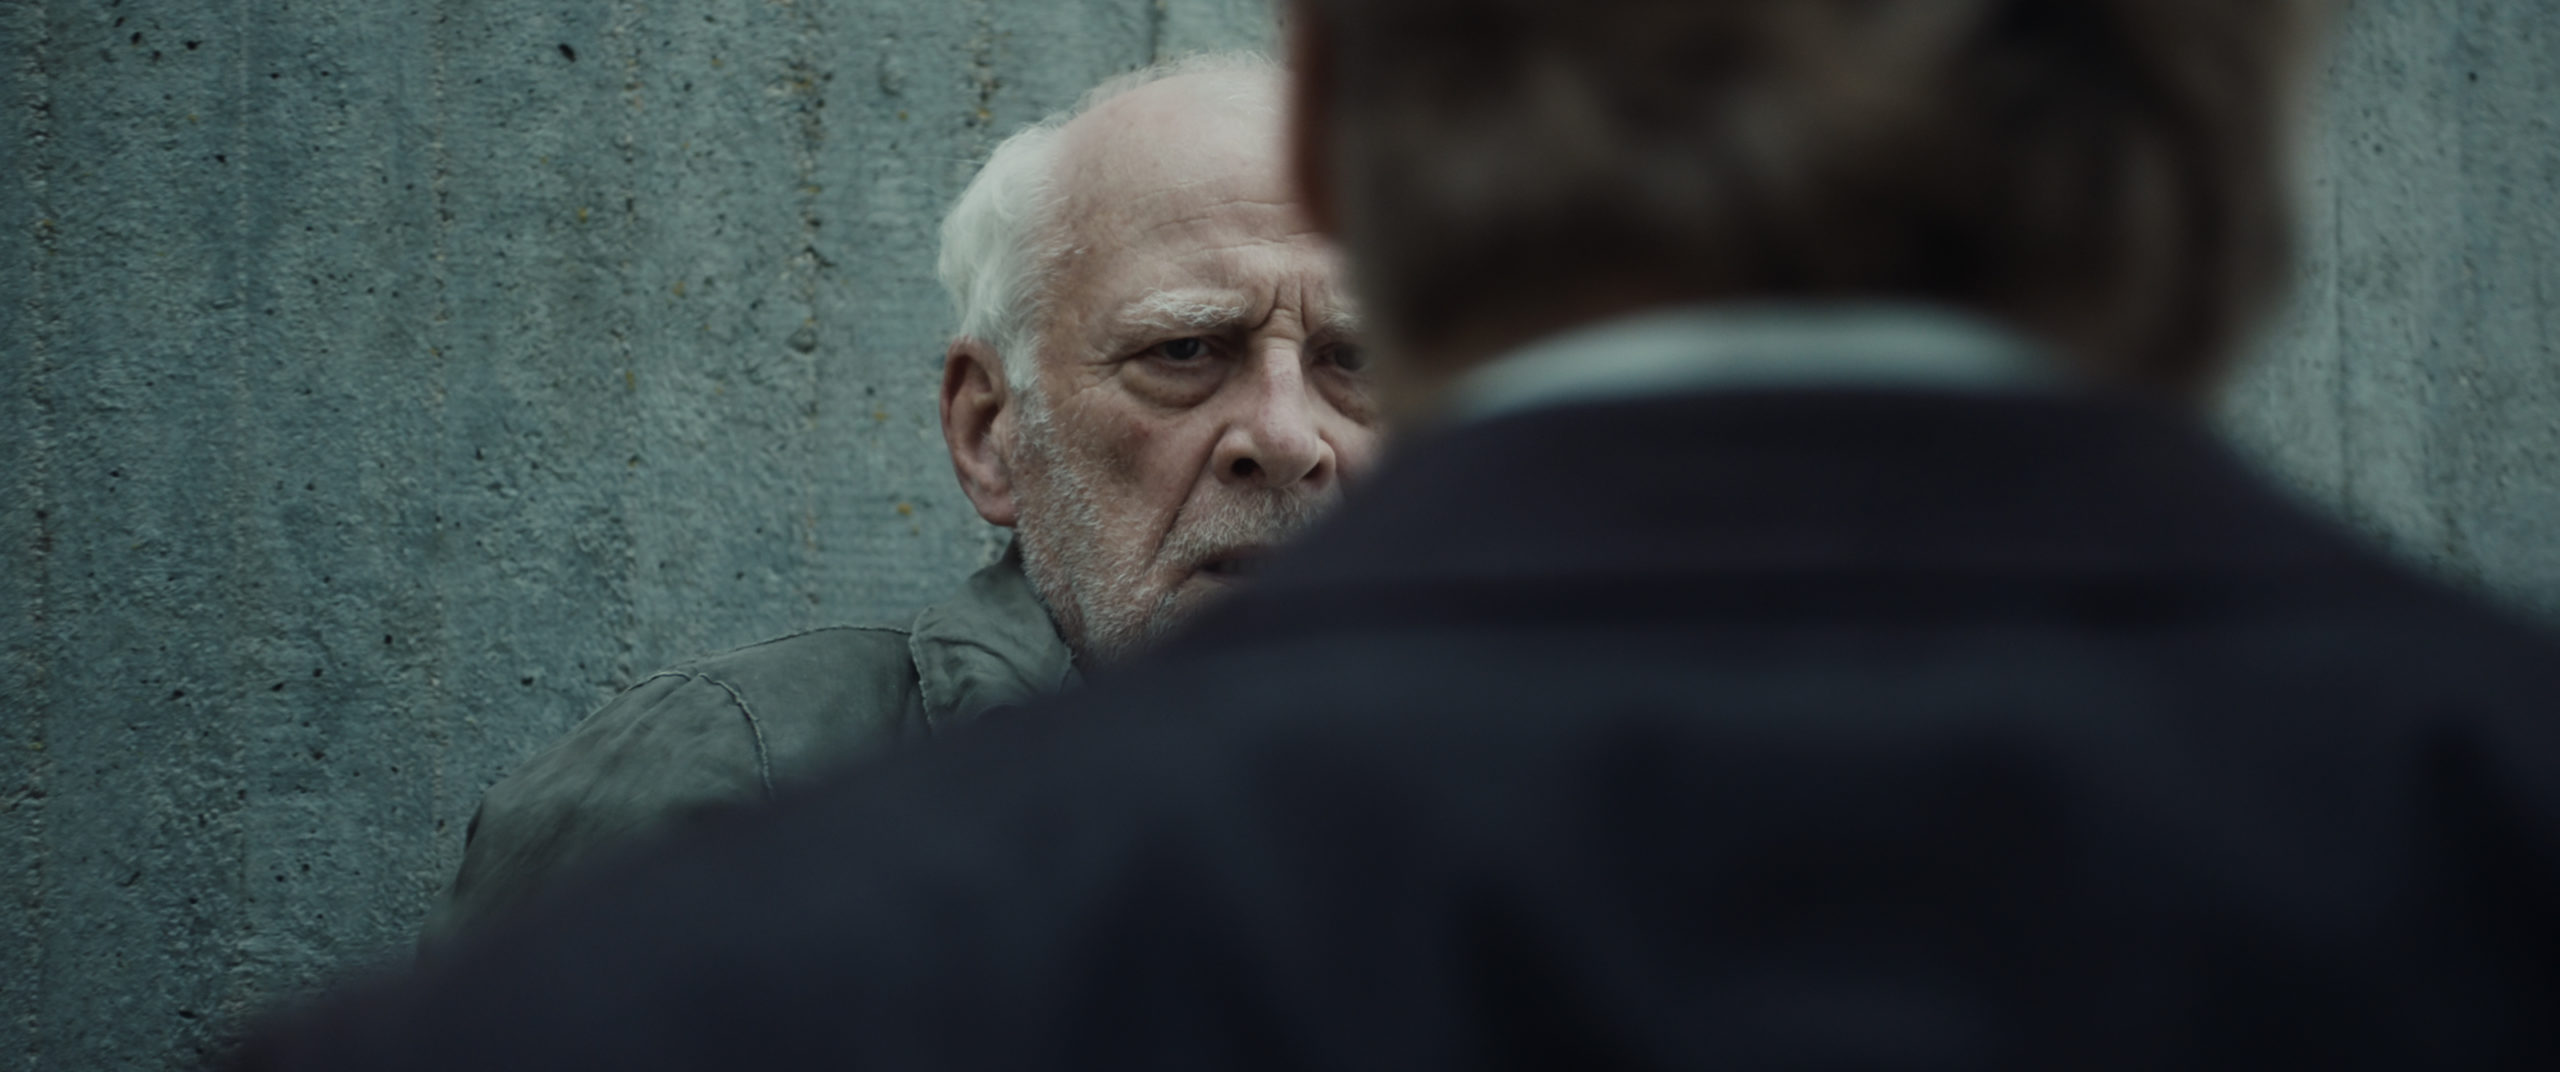 Film still from the feature film Endjaehrig by director Willi Kubica and director of photography Rafael Starman and actor Matthias Lier and Peter Meinhardt.